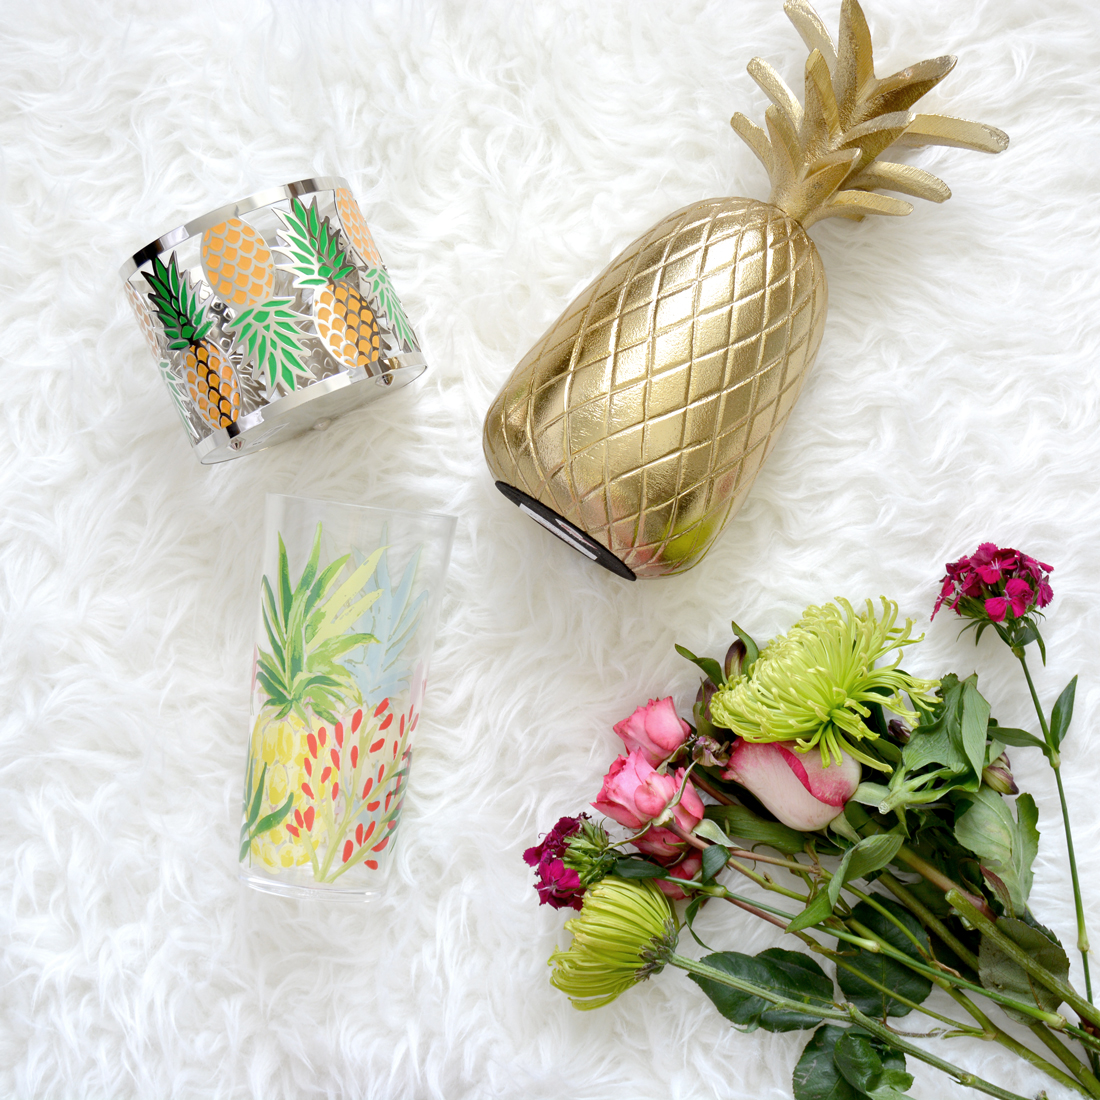 The Summer Pineapple Obsession